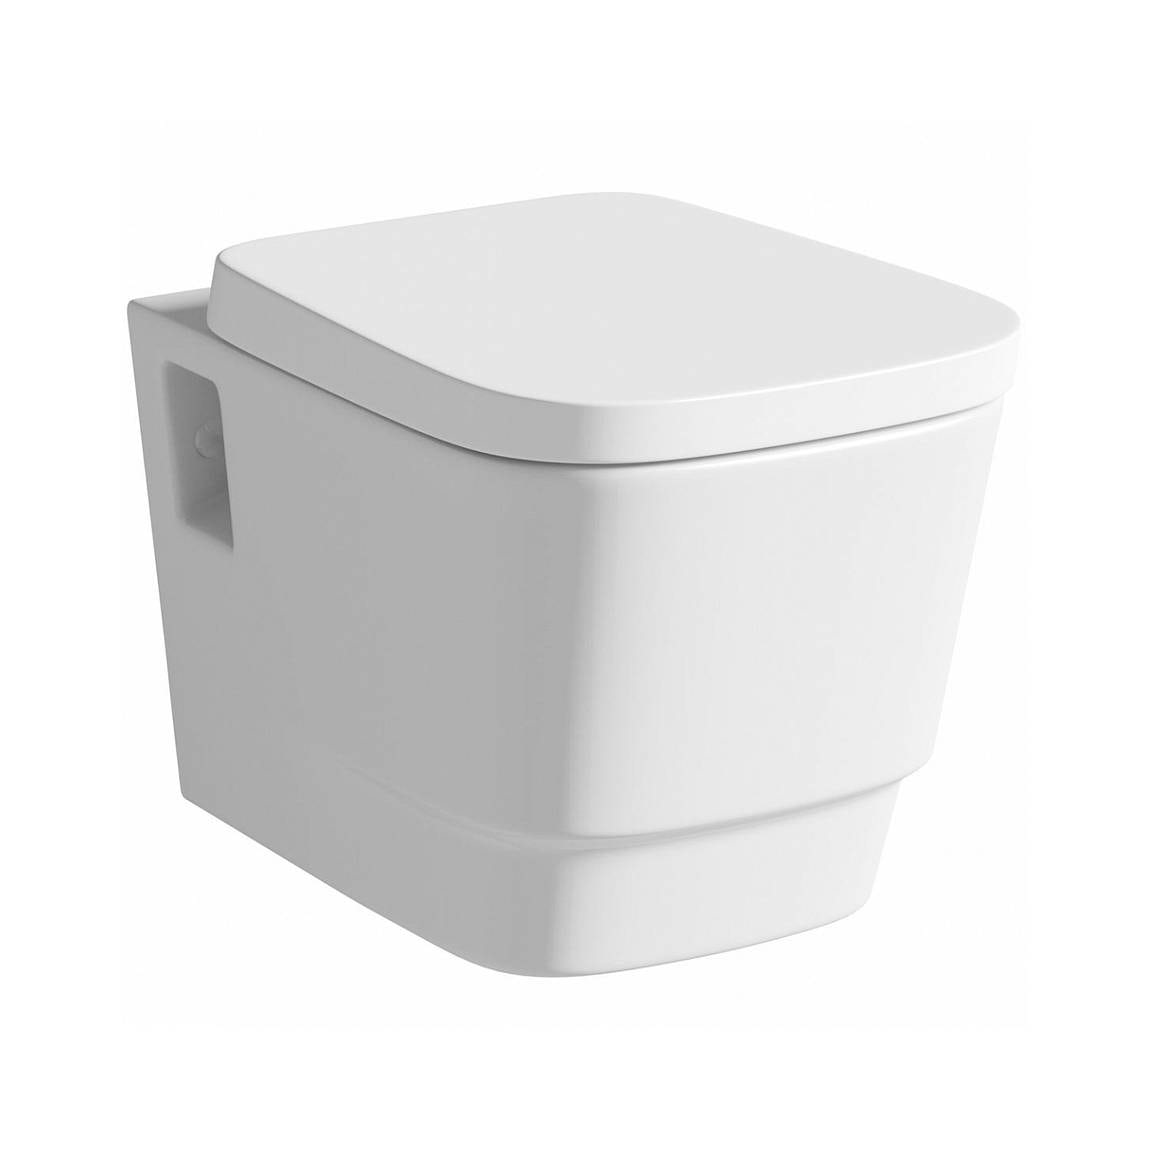 Mode Foster wall hung toilet with soft close seat